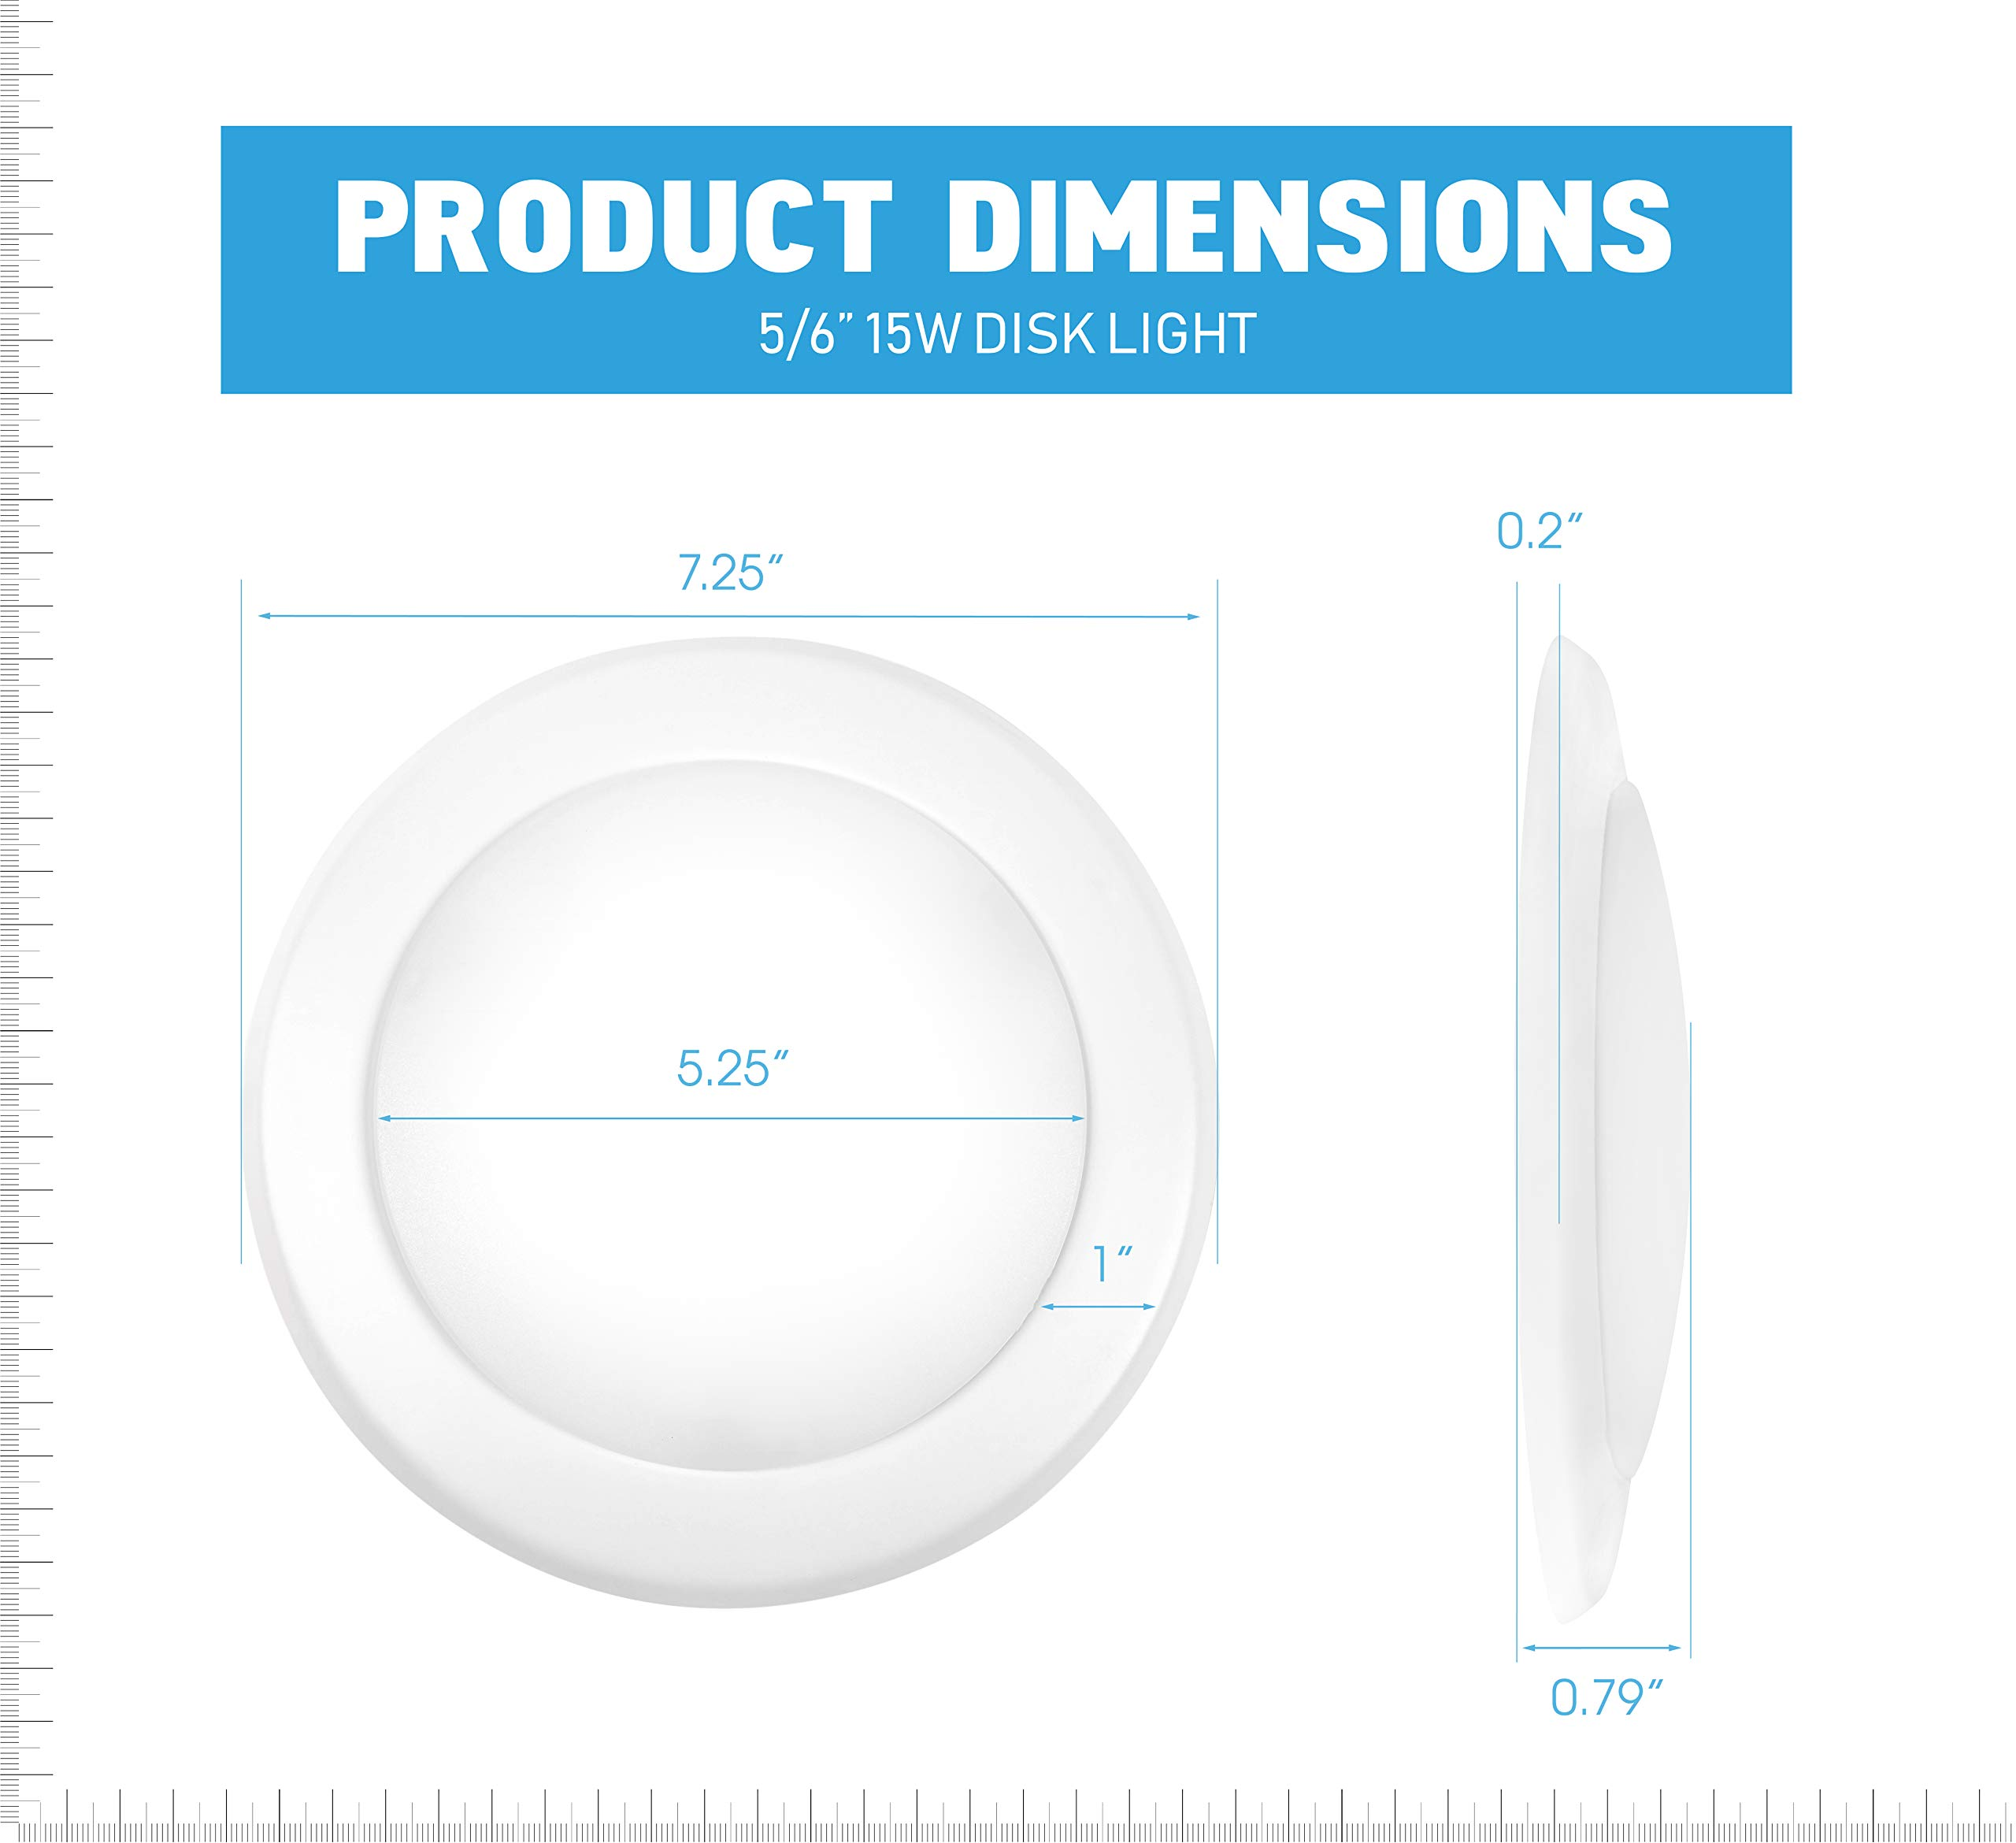 Parmida (12 Pack) 5/6'' Dimmable LED Disk Light Flush Mount Recessed Retrofit Ceiling Lights, 15W (120W Replacement), 5000K (Day Light), Energy Star, Installs into Junction Box Or Recessed Can, 1050lm by Parmida LED Technologies (Image #4)